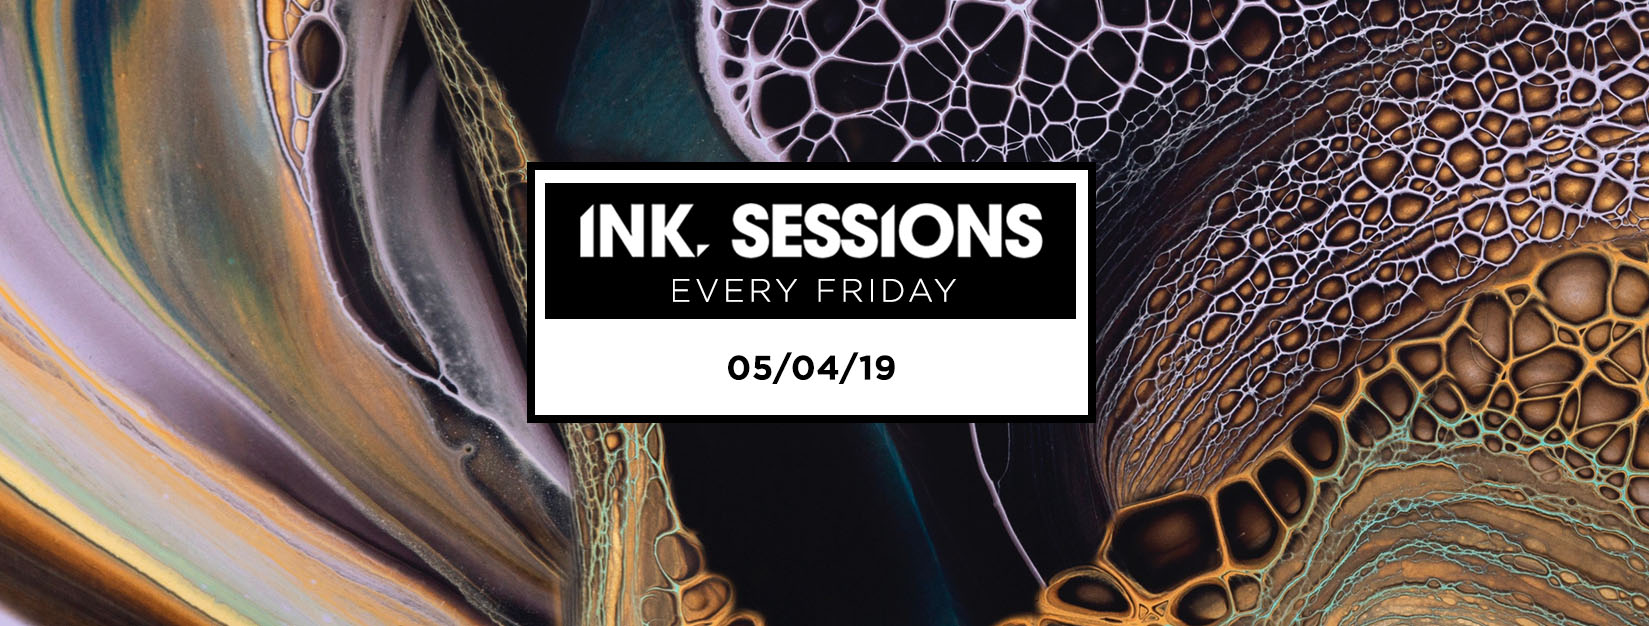 Ink Sessions – 05/04/19